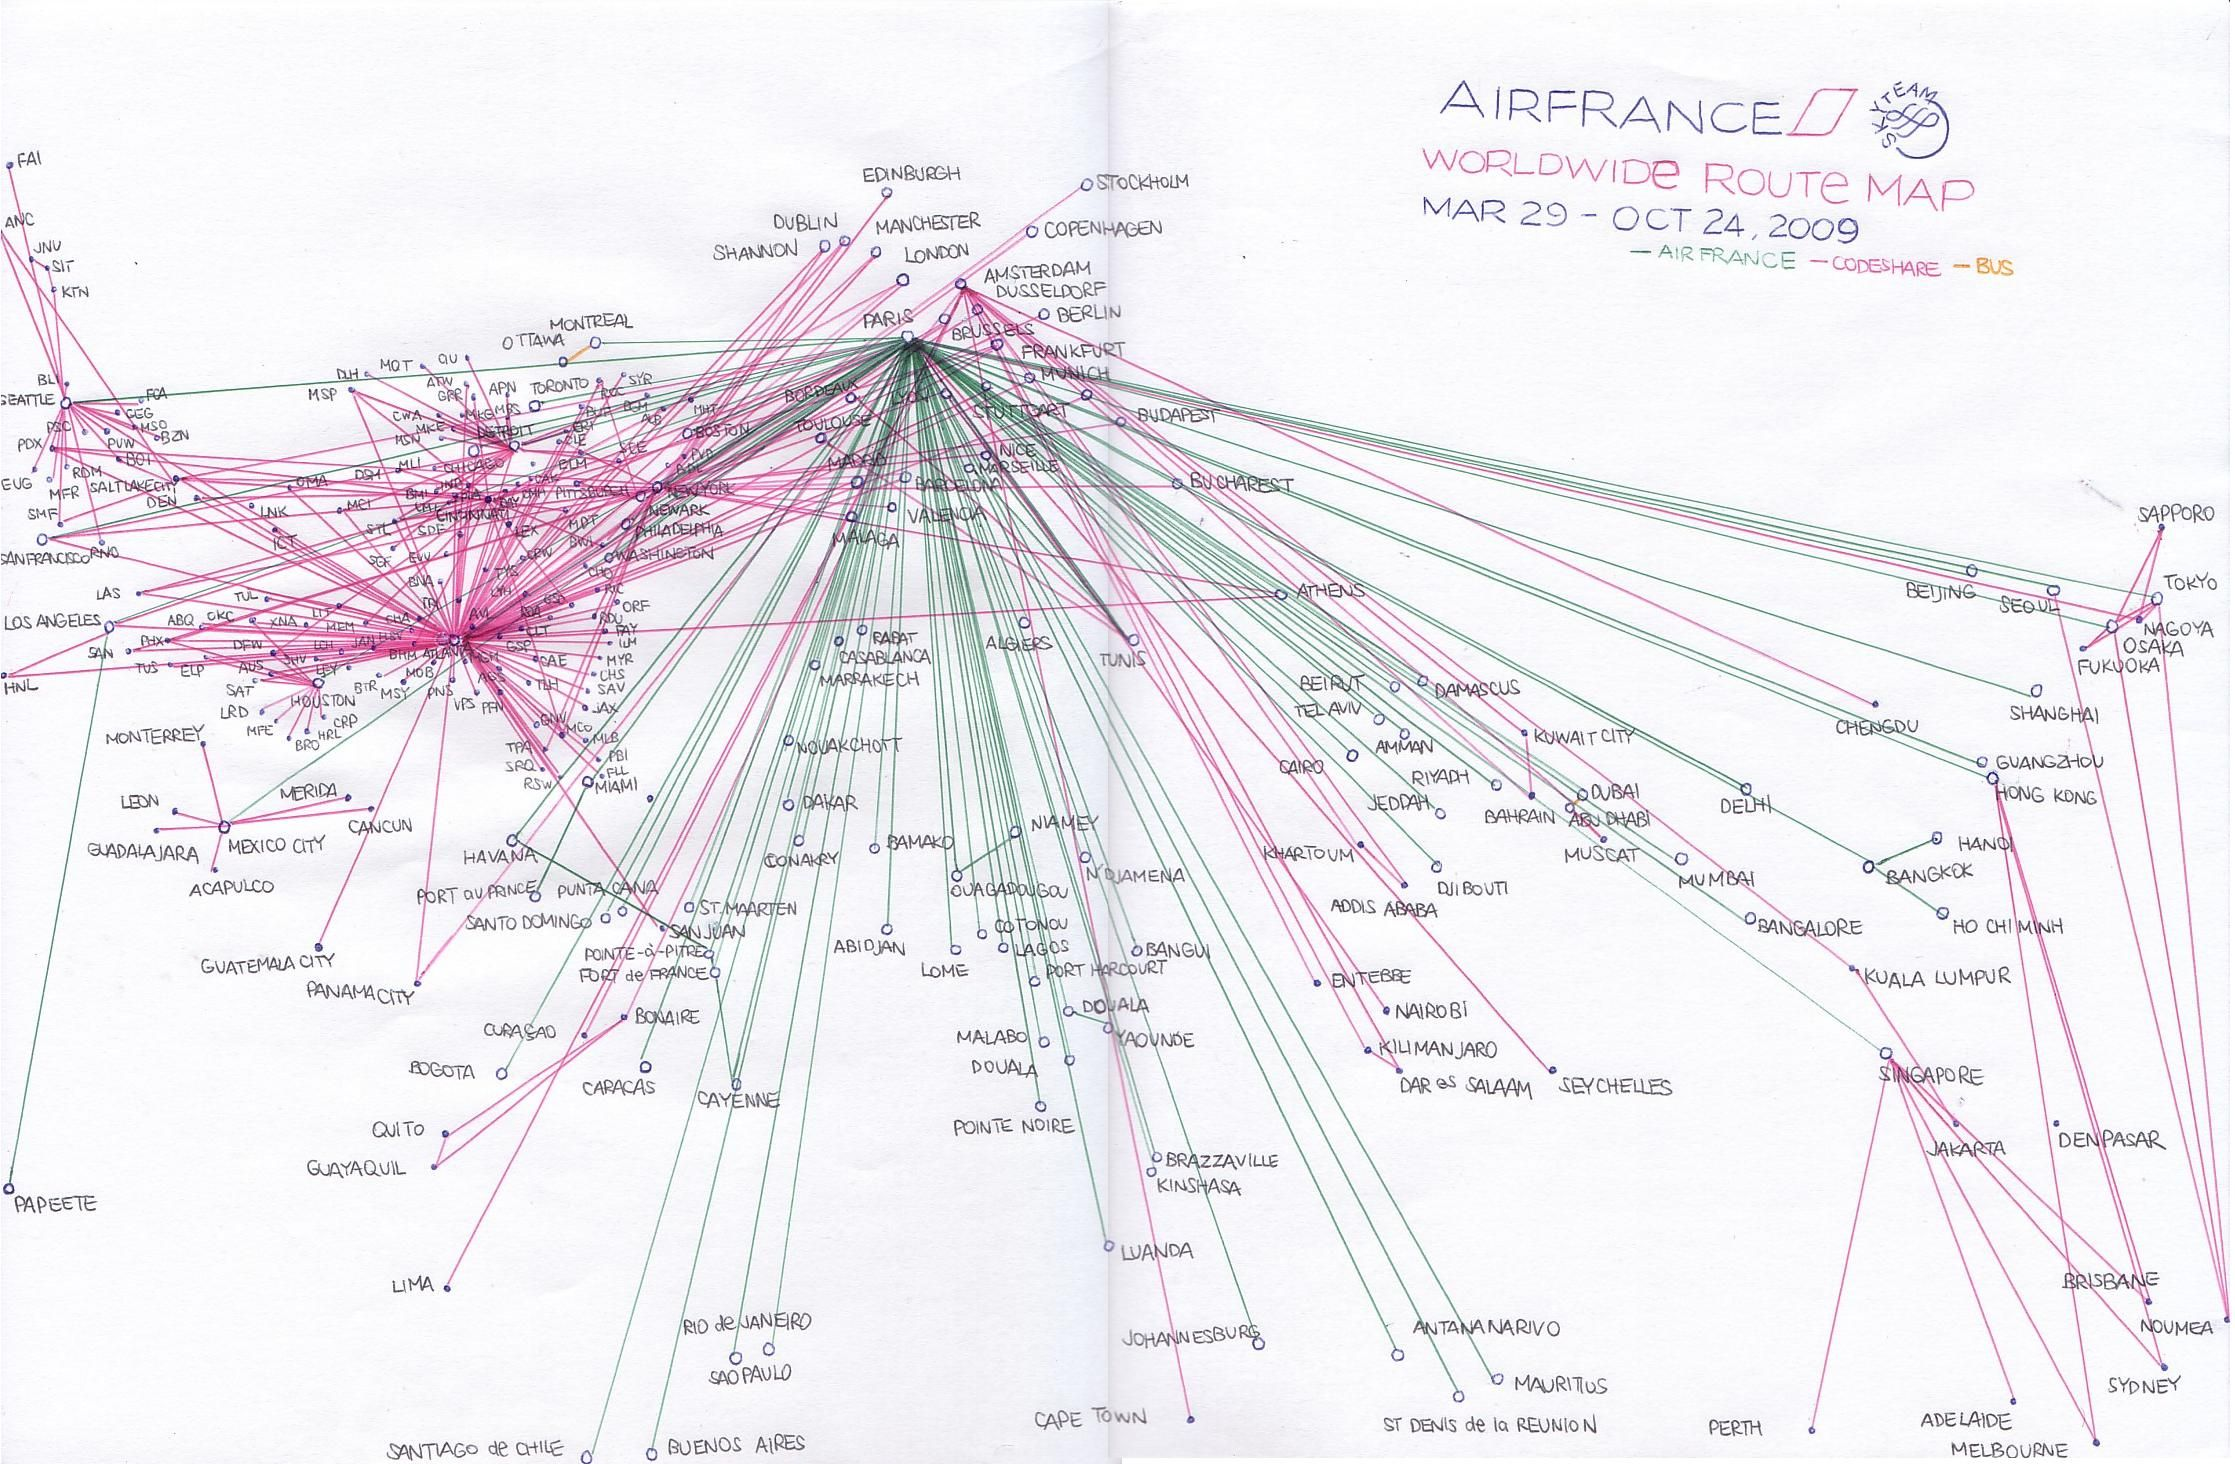 AIRFRANCE 2009.03 International | Route Map Drawings | Pinterest ...